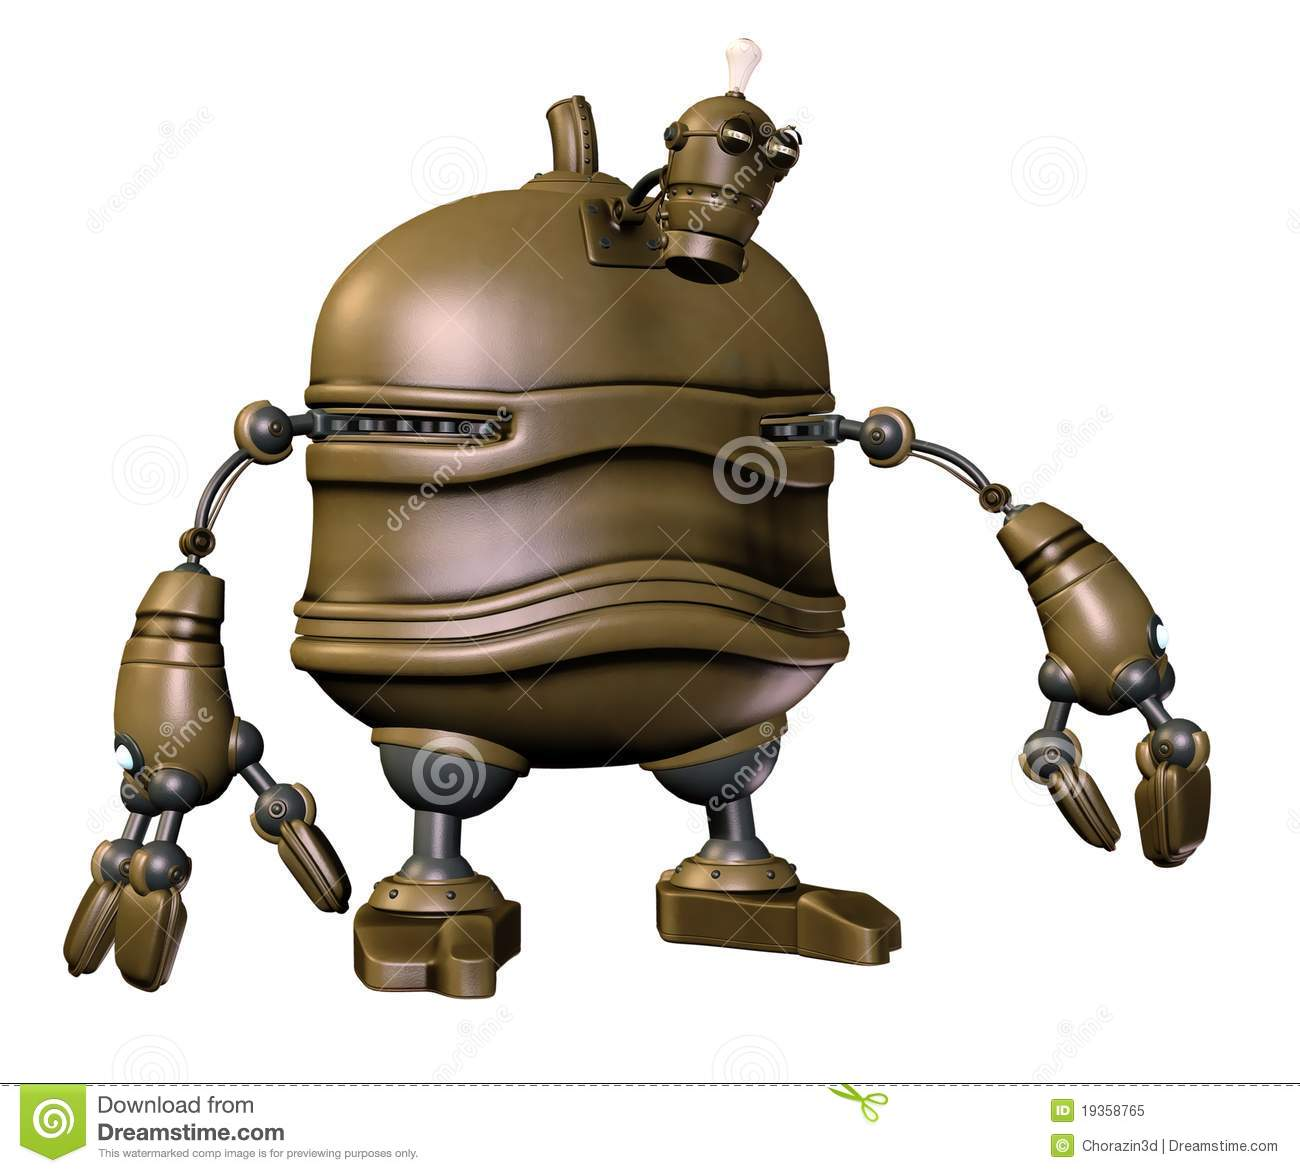 Steampunk Robot 3 Royalty Free Stock Photo - Image: 19358765